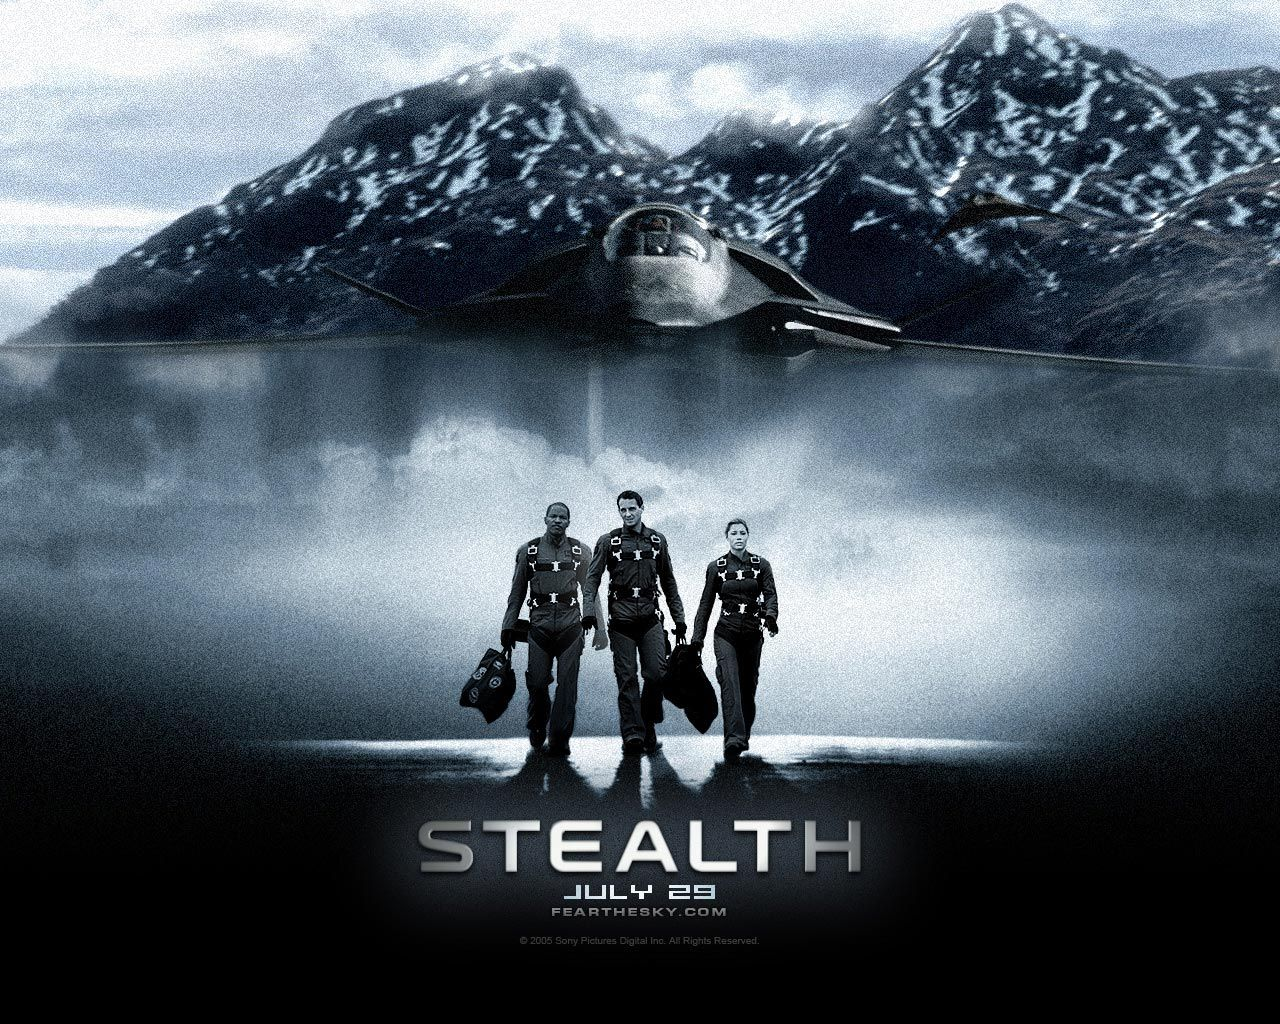 All About Anna 2005 Download stealth (2005) | download free movies from mediafire link in